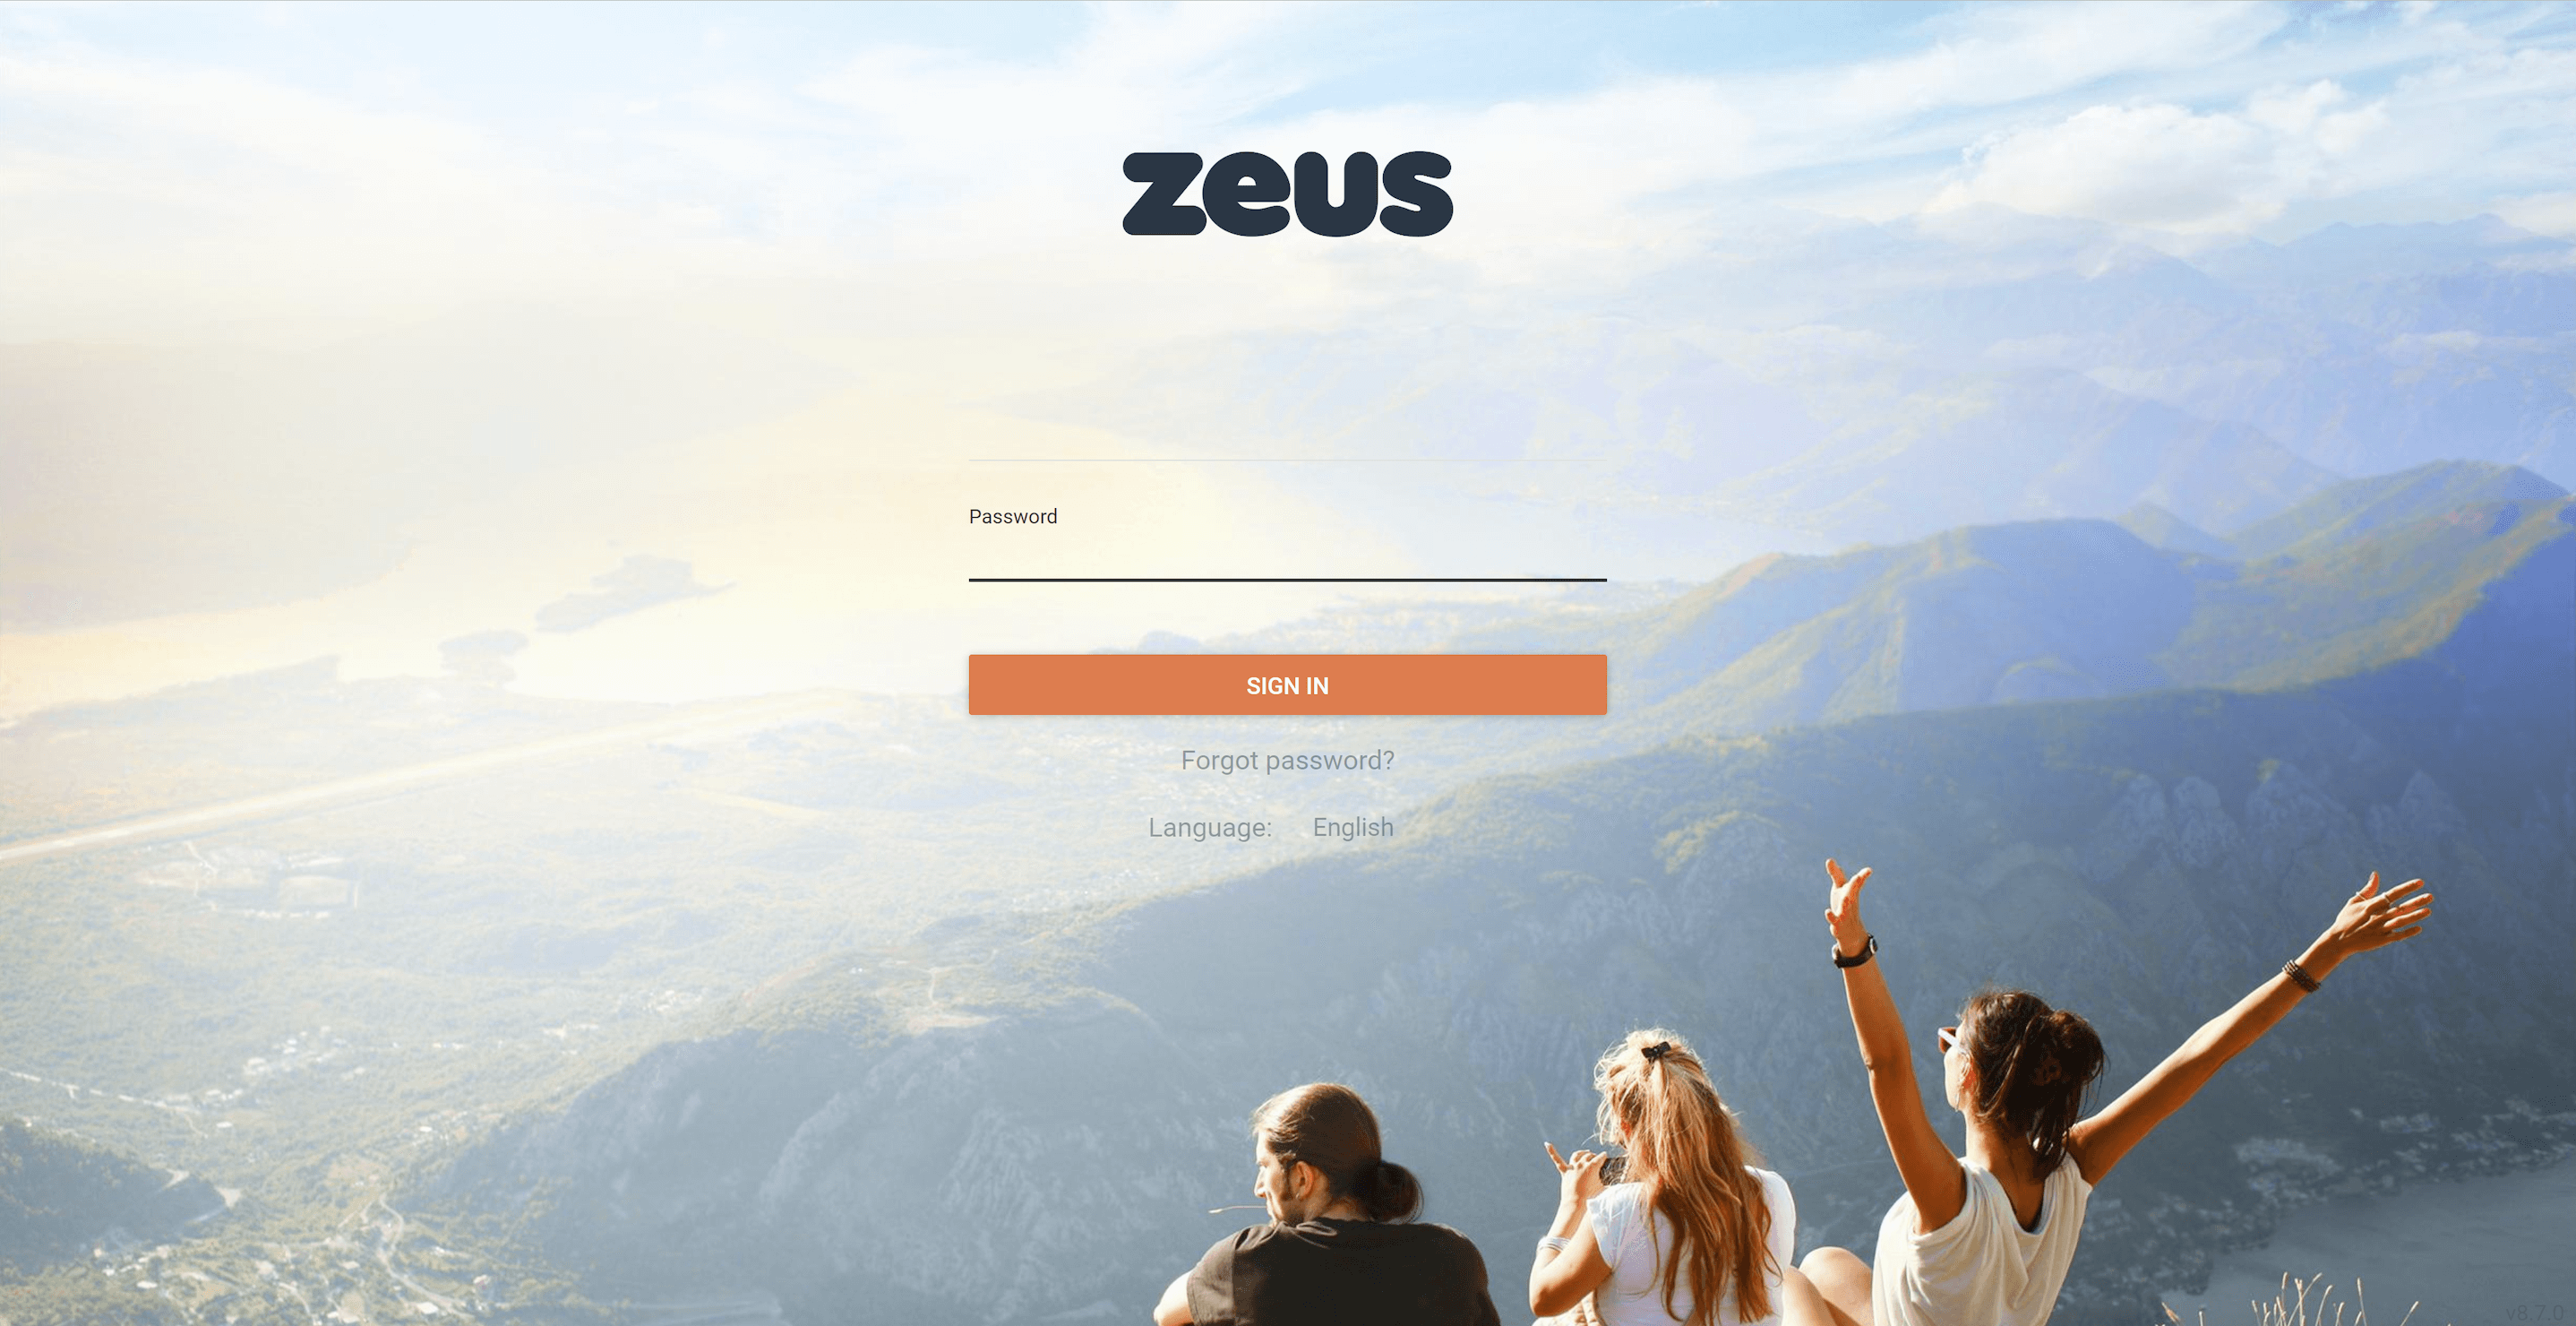 Zeus - atmail white label email example